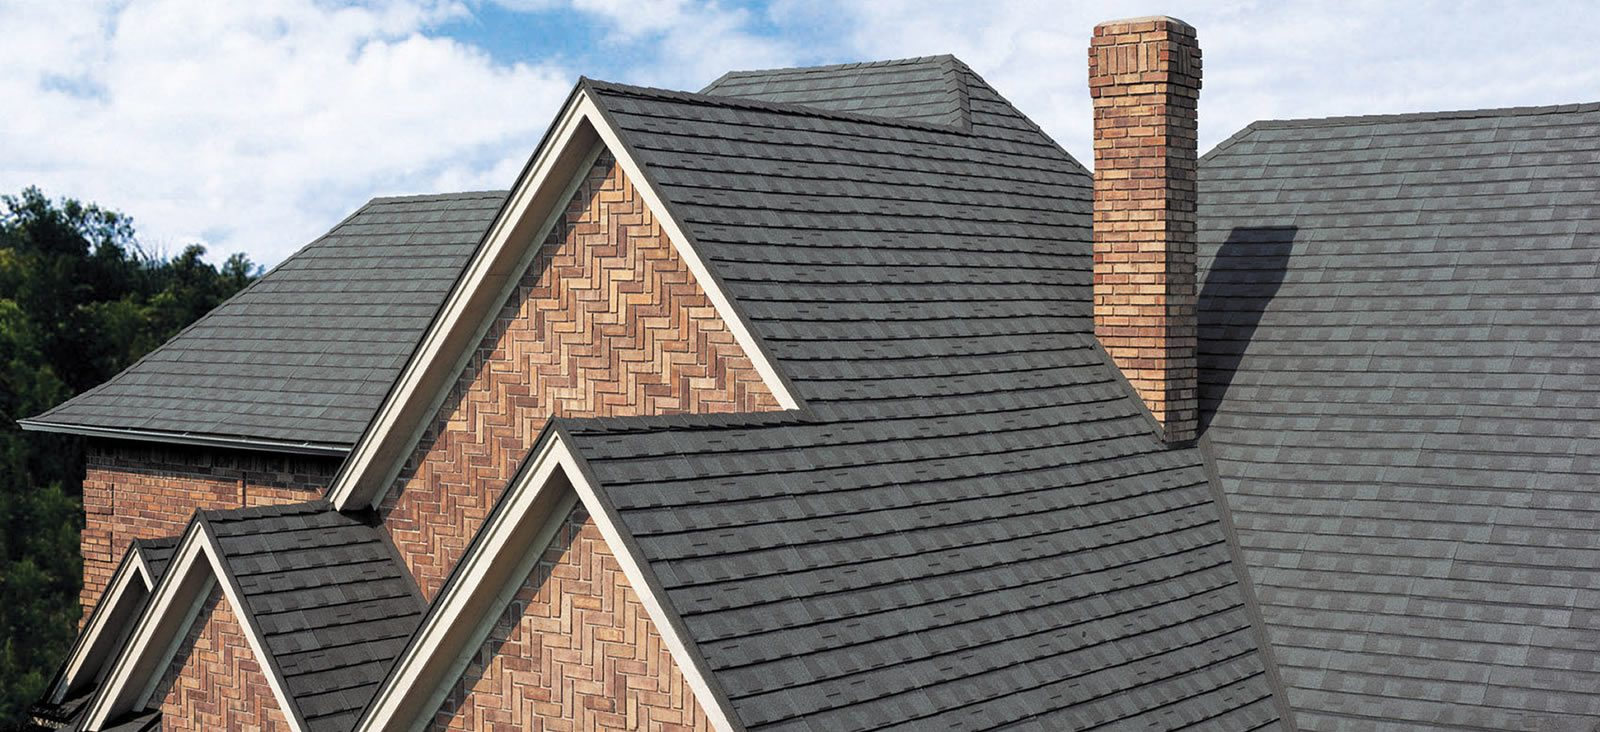 metal tile, tyler, tx, roofing, roof, roofers, repair, storm, leak, water, damage, rain, bright, energy efficient